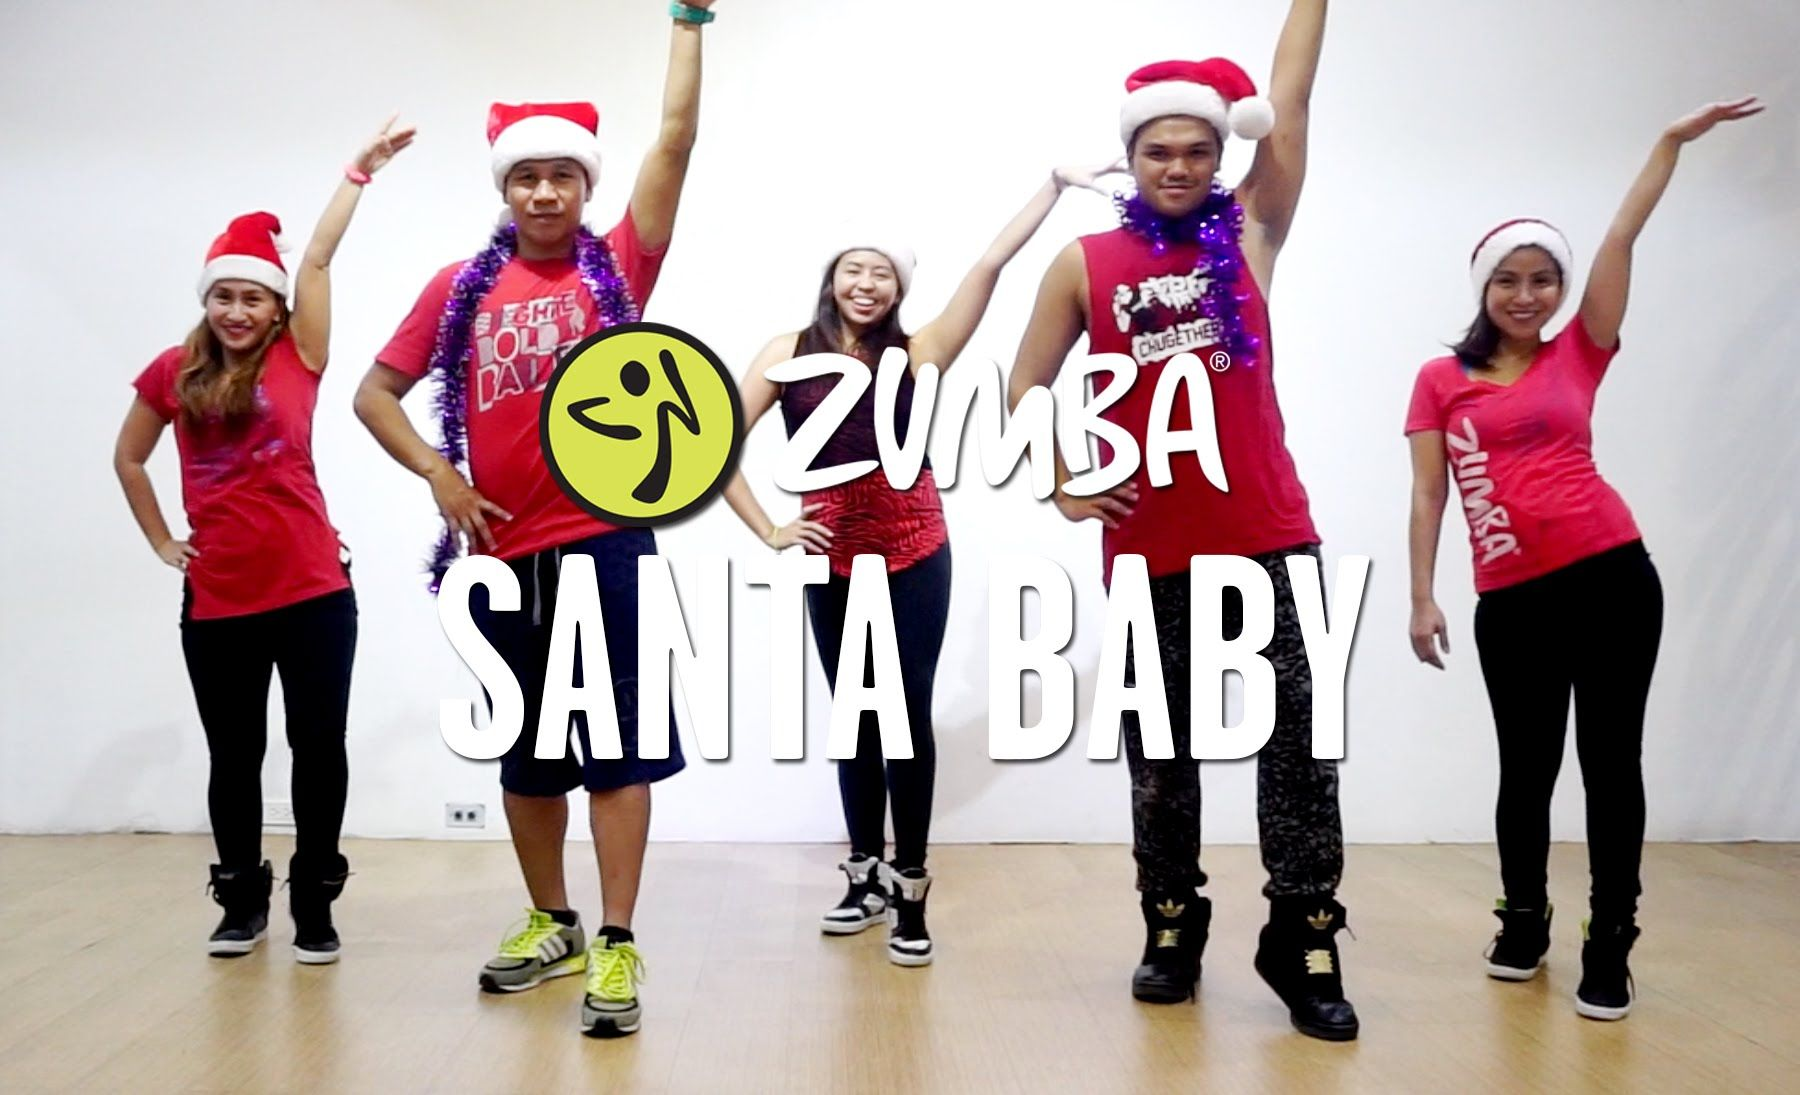 Santa Baby By The Pussycat Dolls Zumba Pre Cool Down Live Love Party Zumba Workout Videos Zumba Workout Zumba